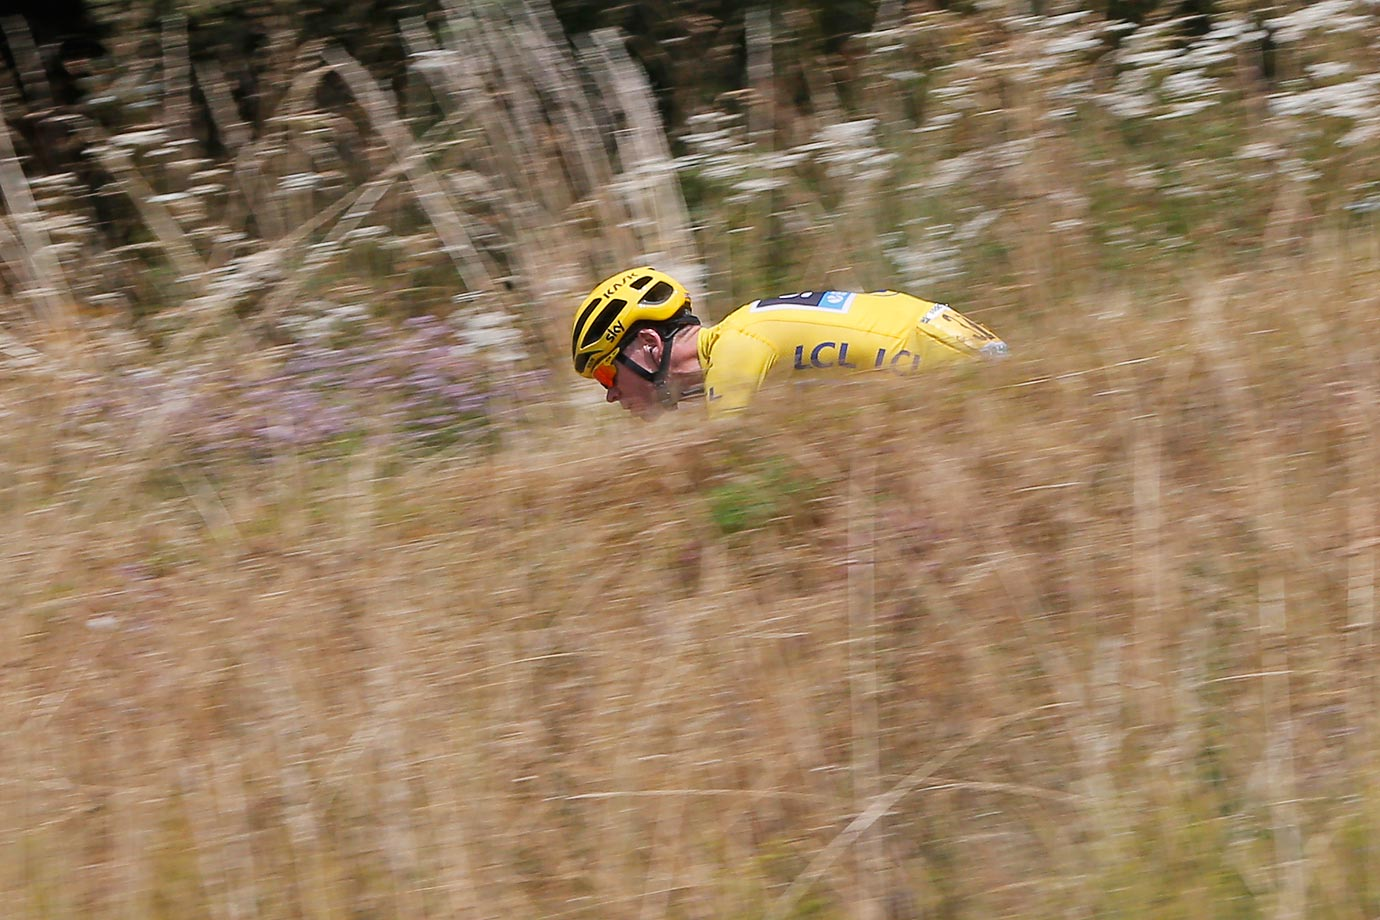 Chris Froome speeds downhill during the 12th stage of the Tour de France.